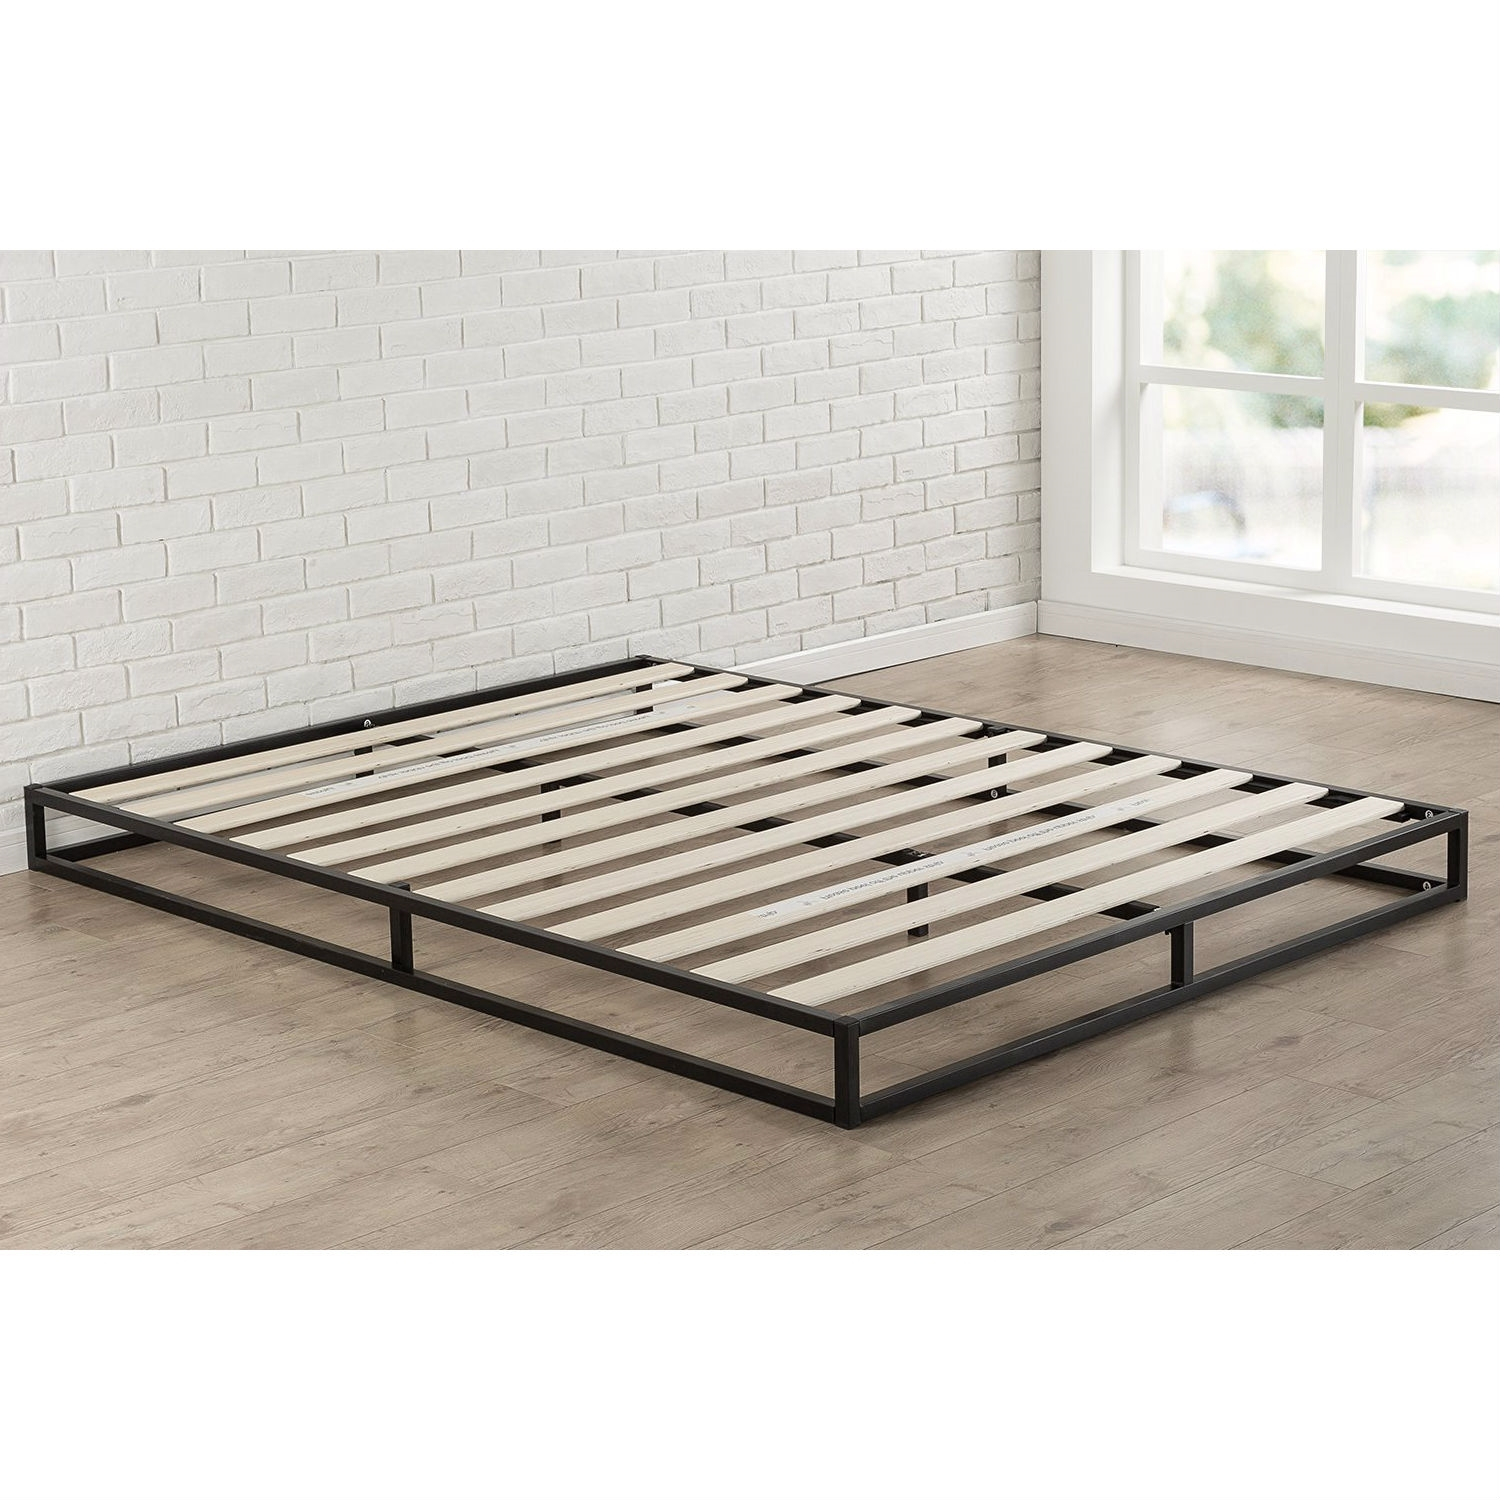 Very Low Platform Bed King Size 6 Inch Low Profile Metal Platform Bed Frame With